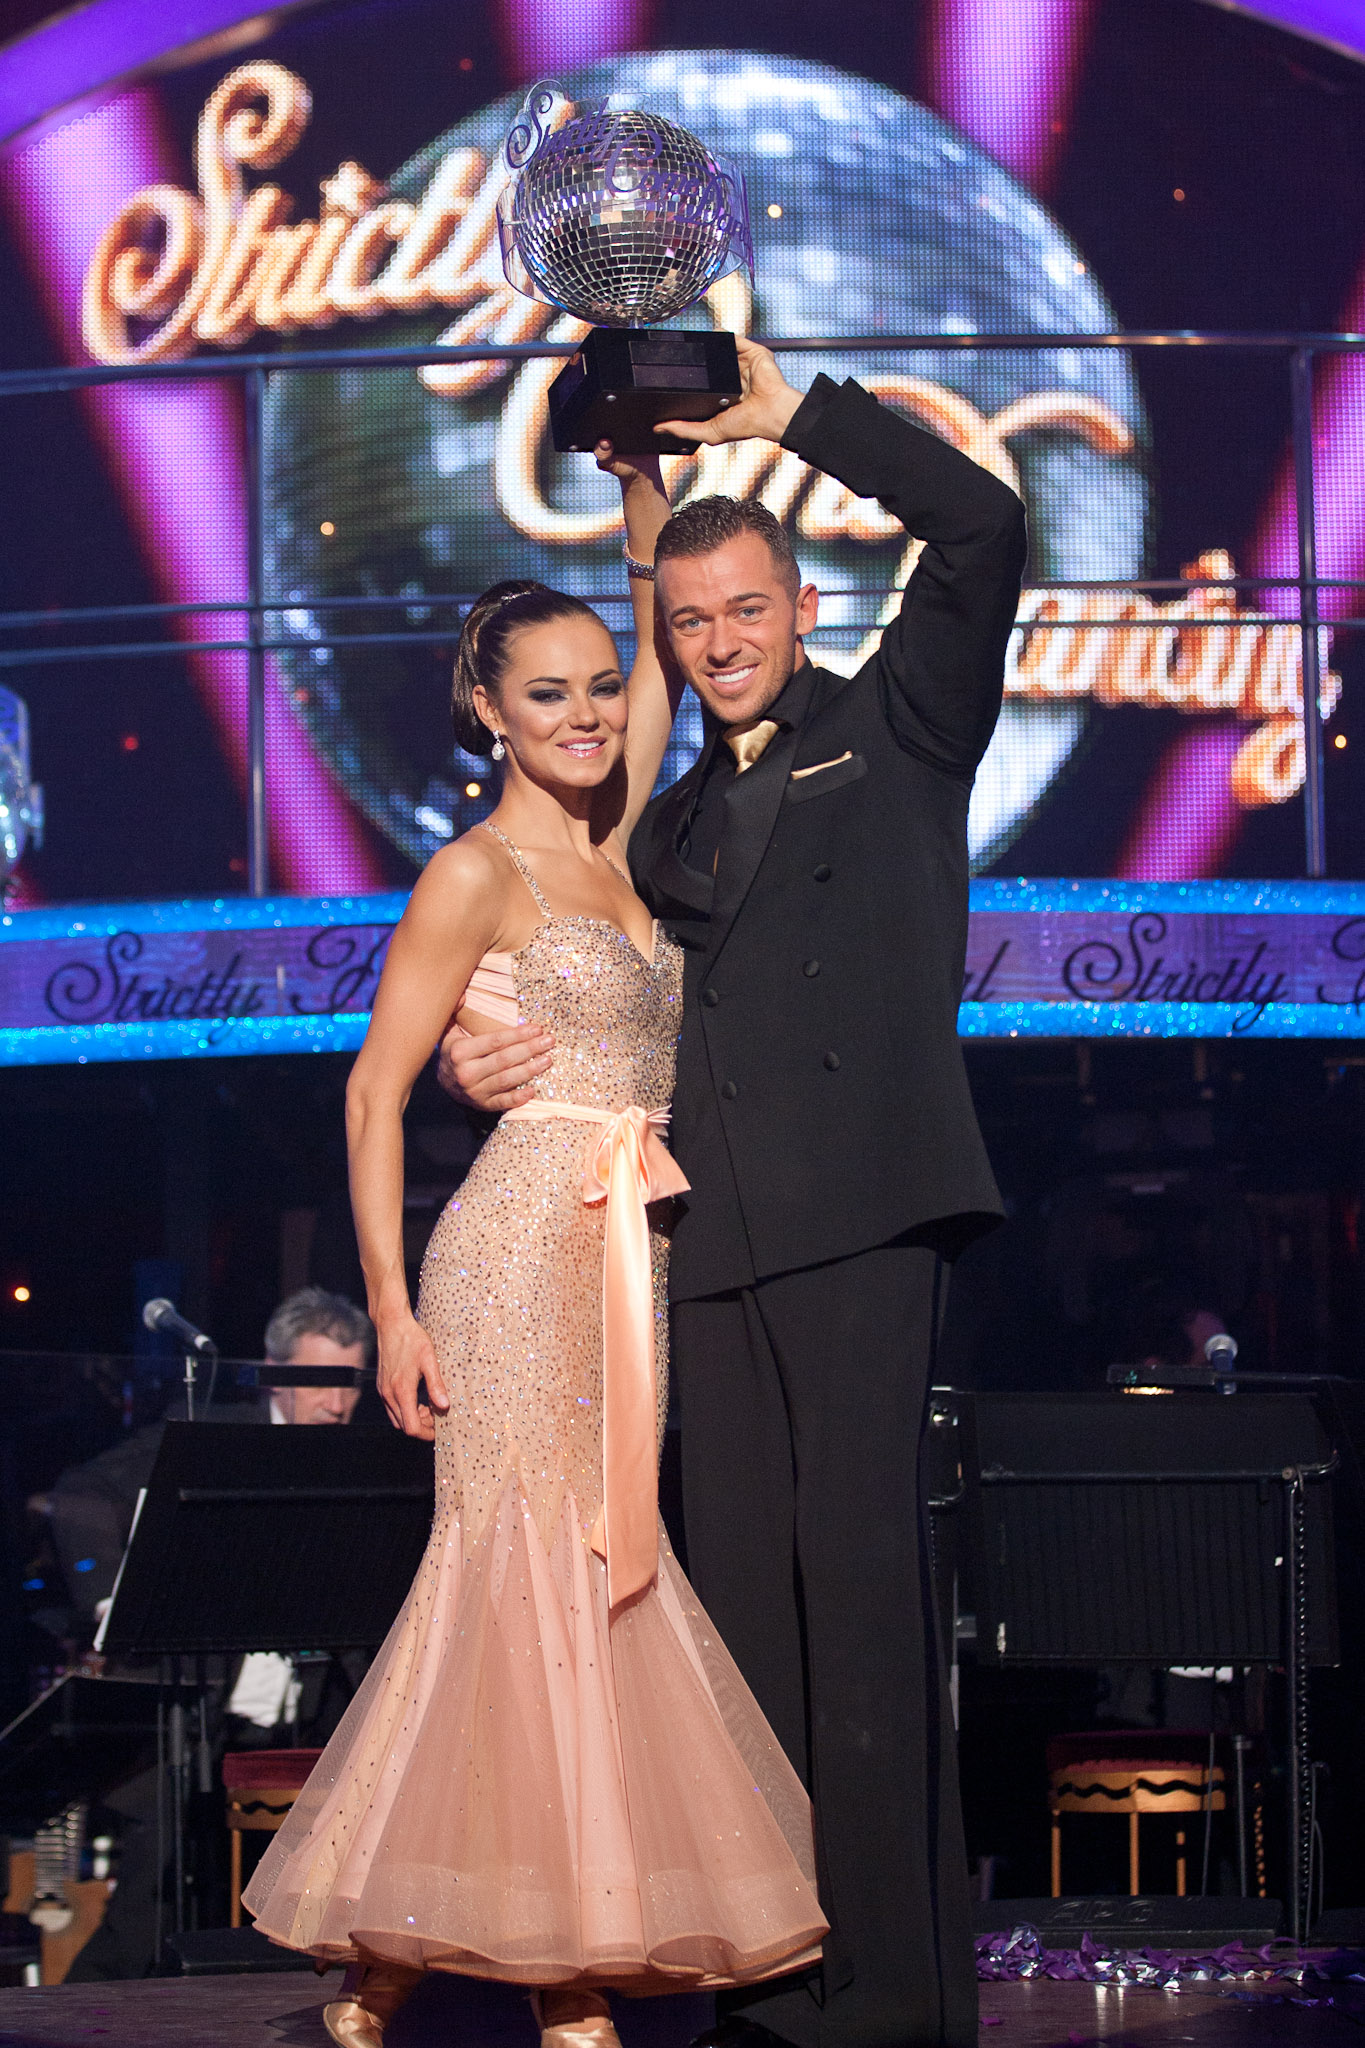 Strictly Come Dancing winners | Ballet News | Straight from